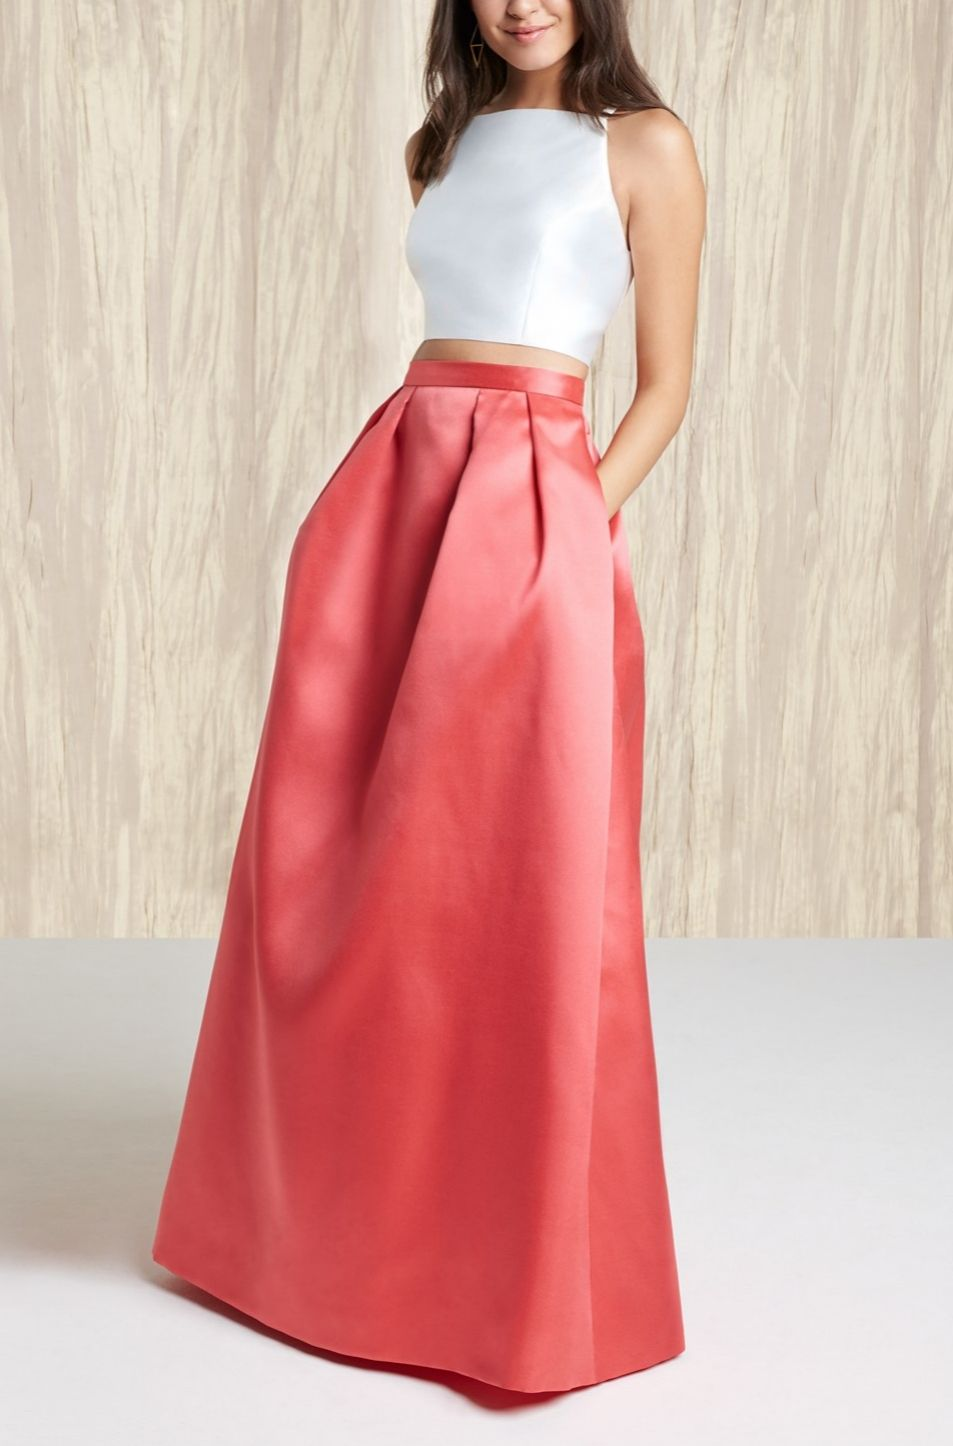 This gorgeous twopiece satin ballgown is in the running for prom